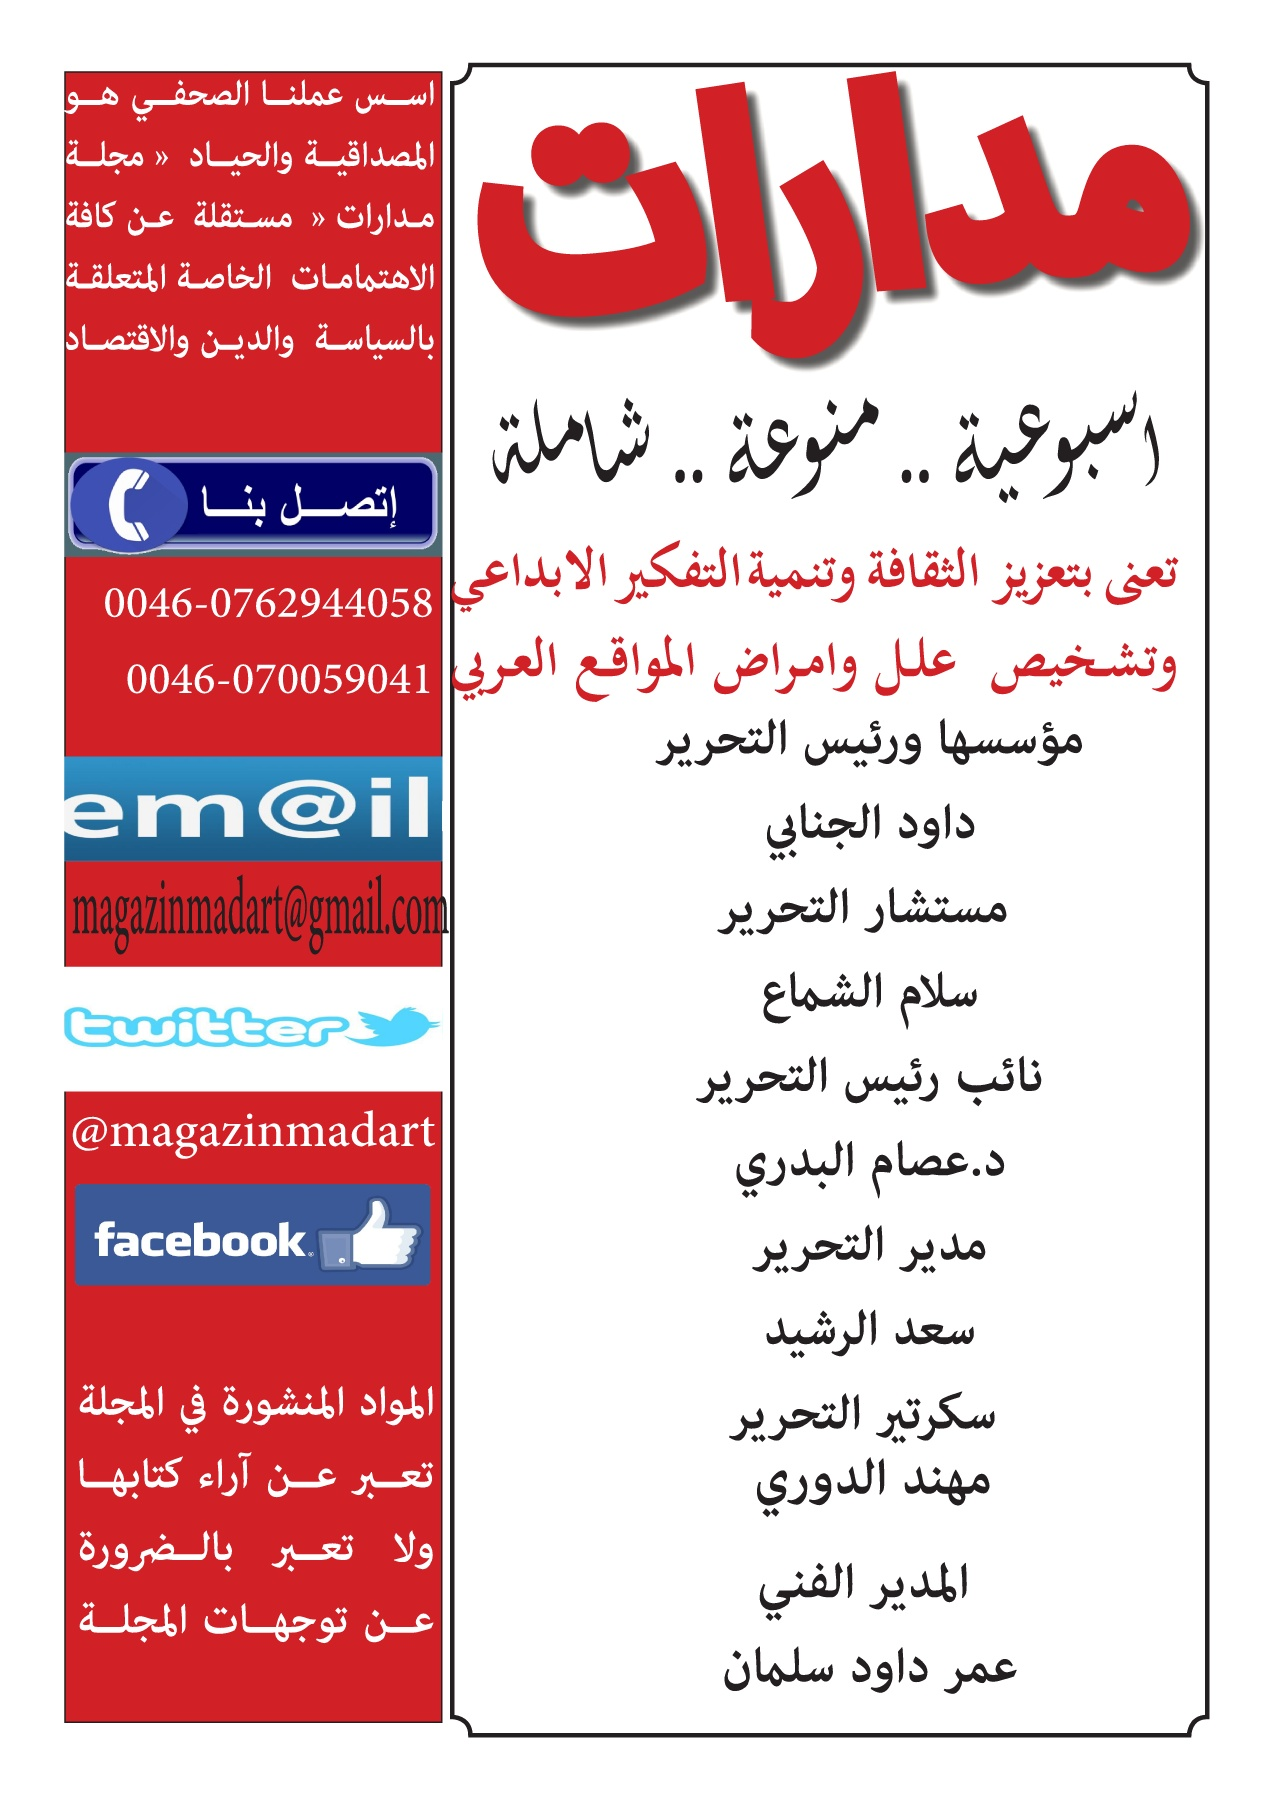 098d19ef6 مجلة مدارات Pages 1 - 50 - Text Version | AnyFlip